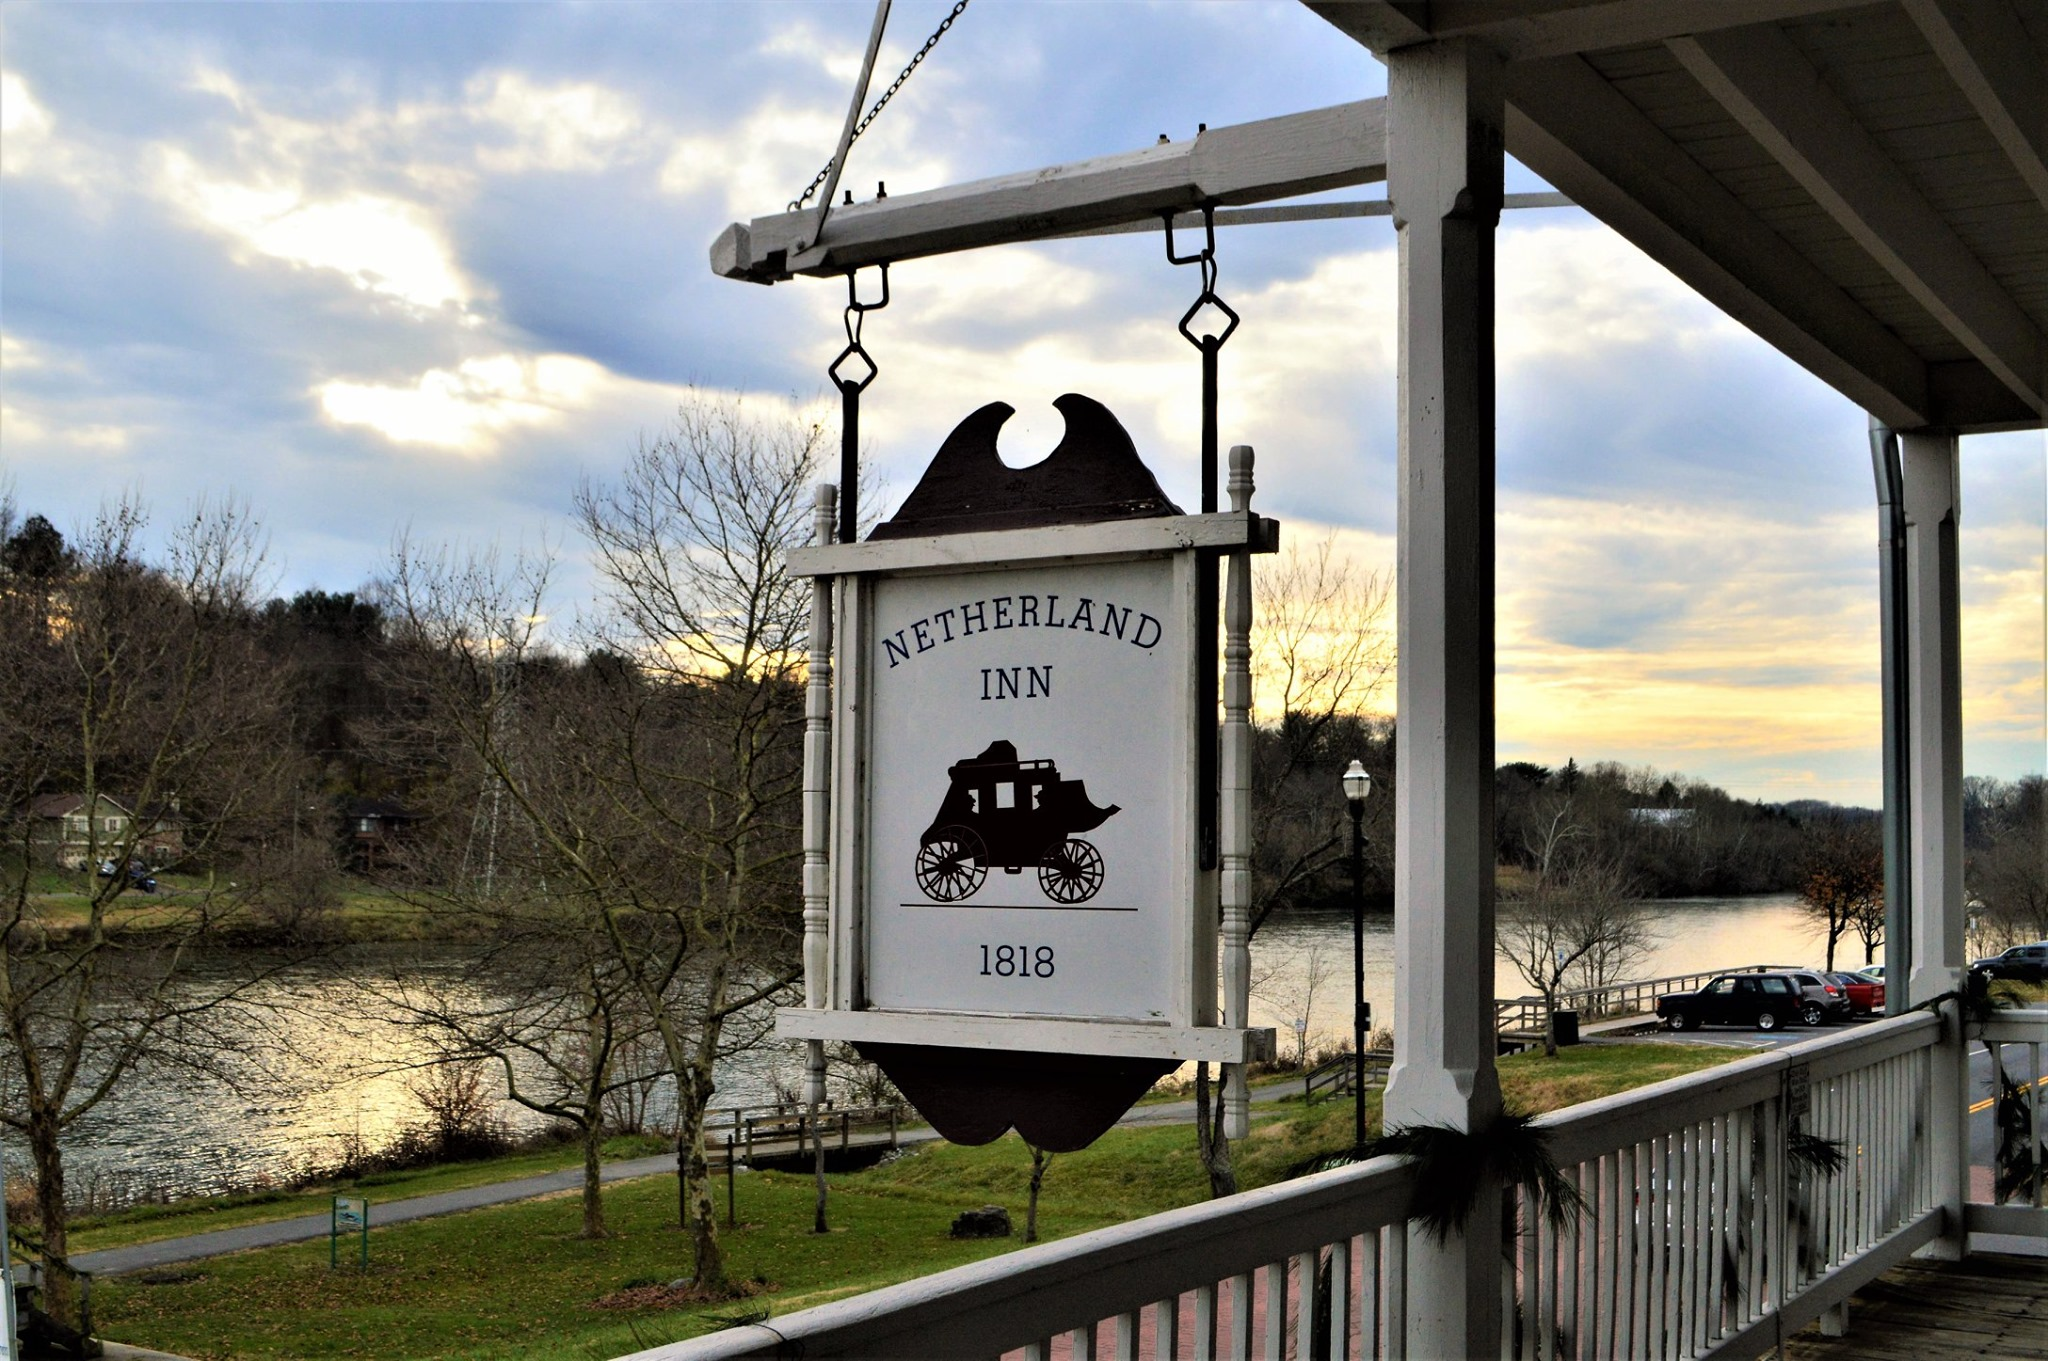 History Buffs Will Love The Unique Frontier History That You Can Find At The Netherland Inn In East Tennessee